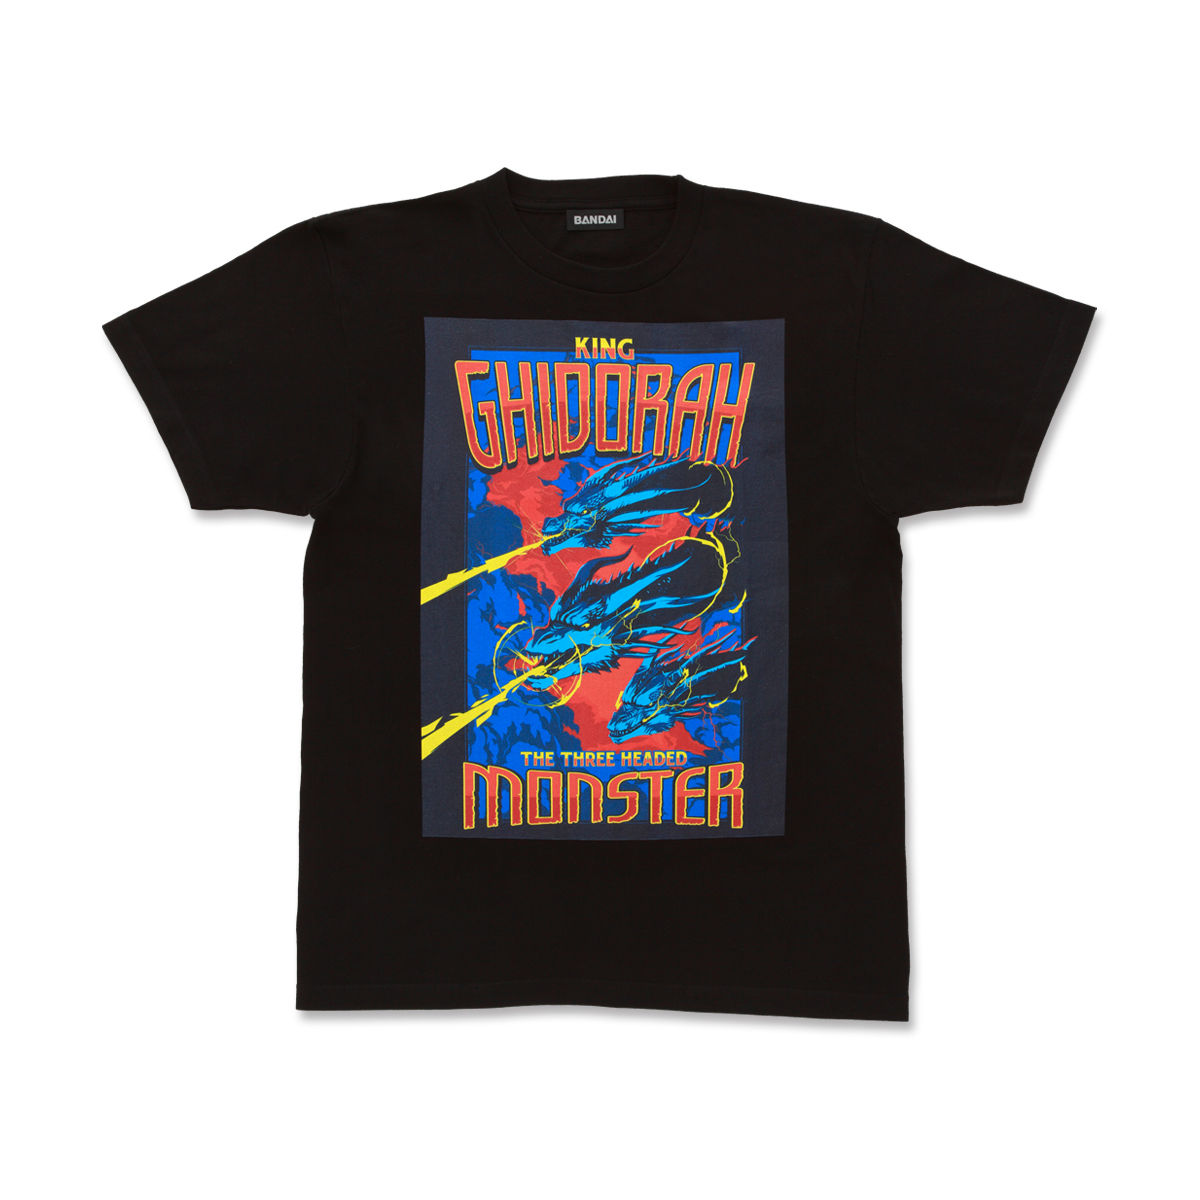 Godzilla: King of the Monsters - King Ghidorah T-shirt